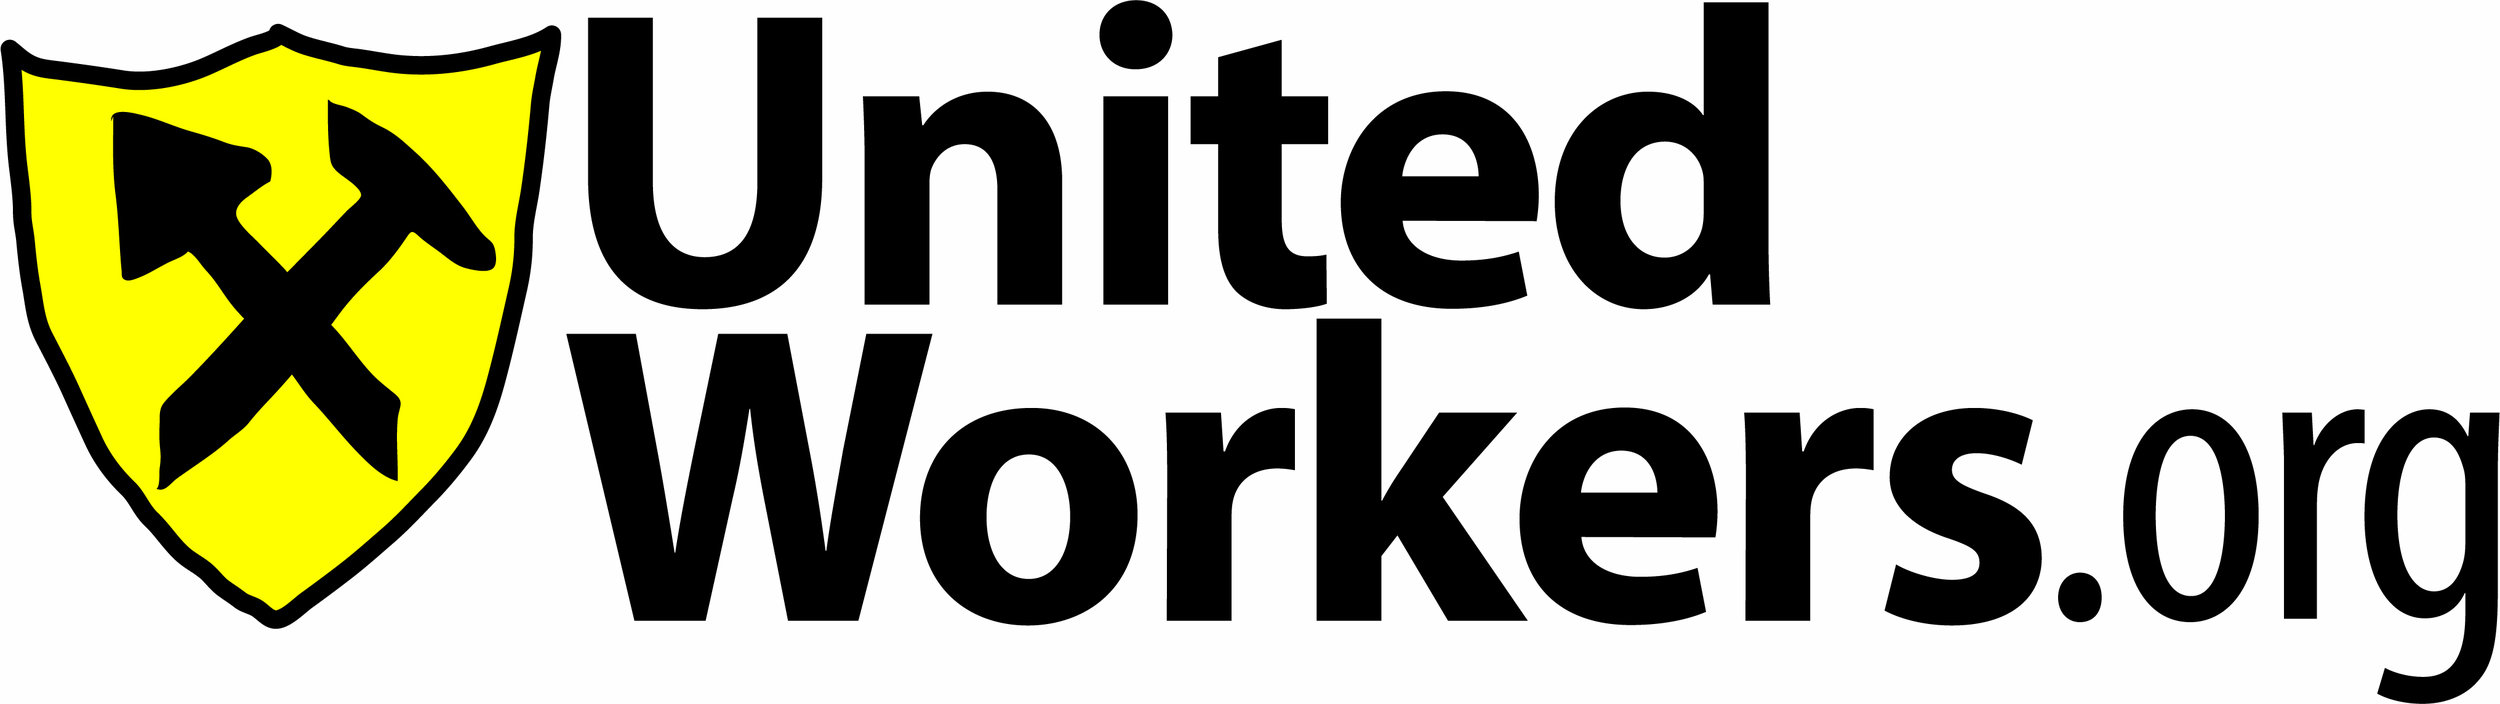 united-workers-logo.jpg